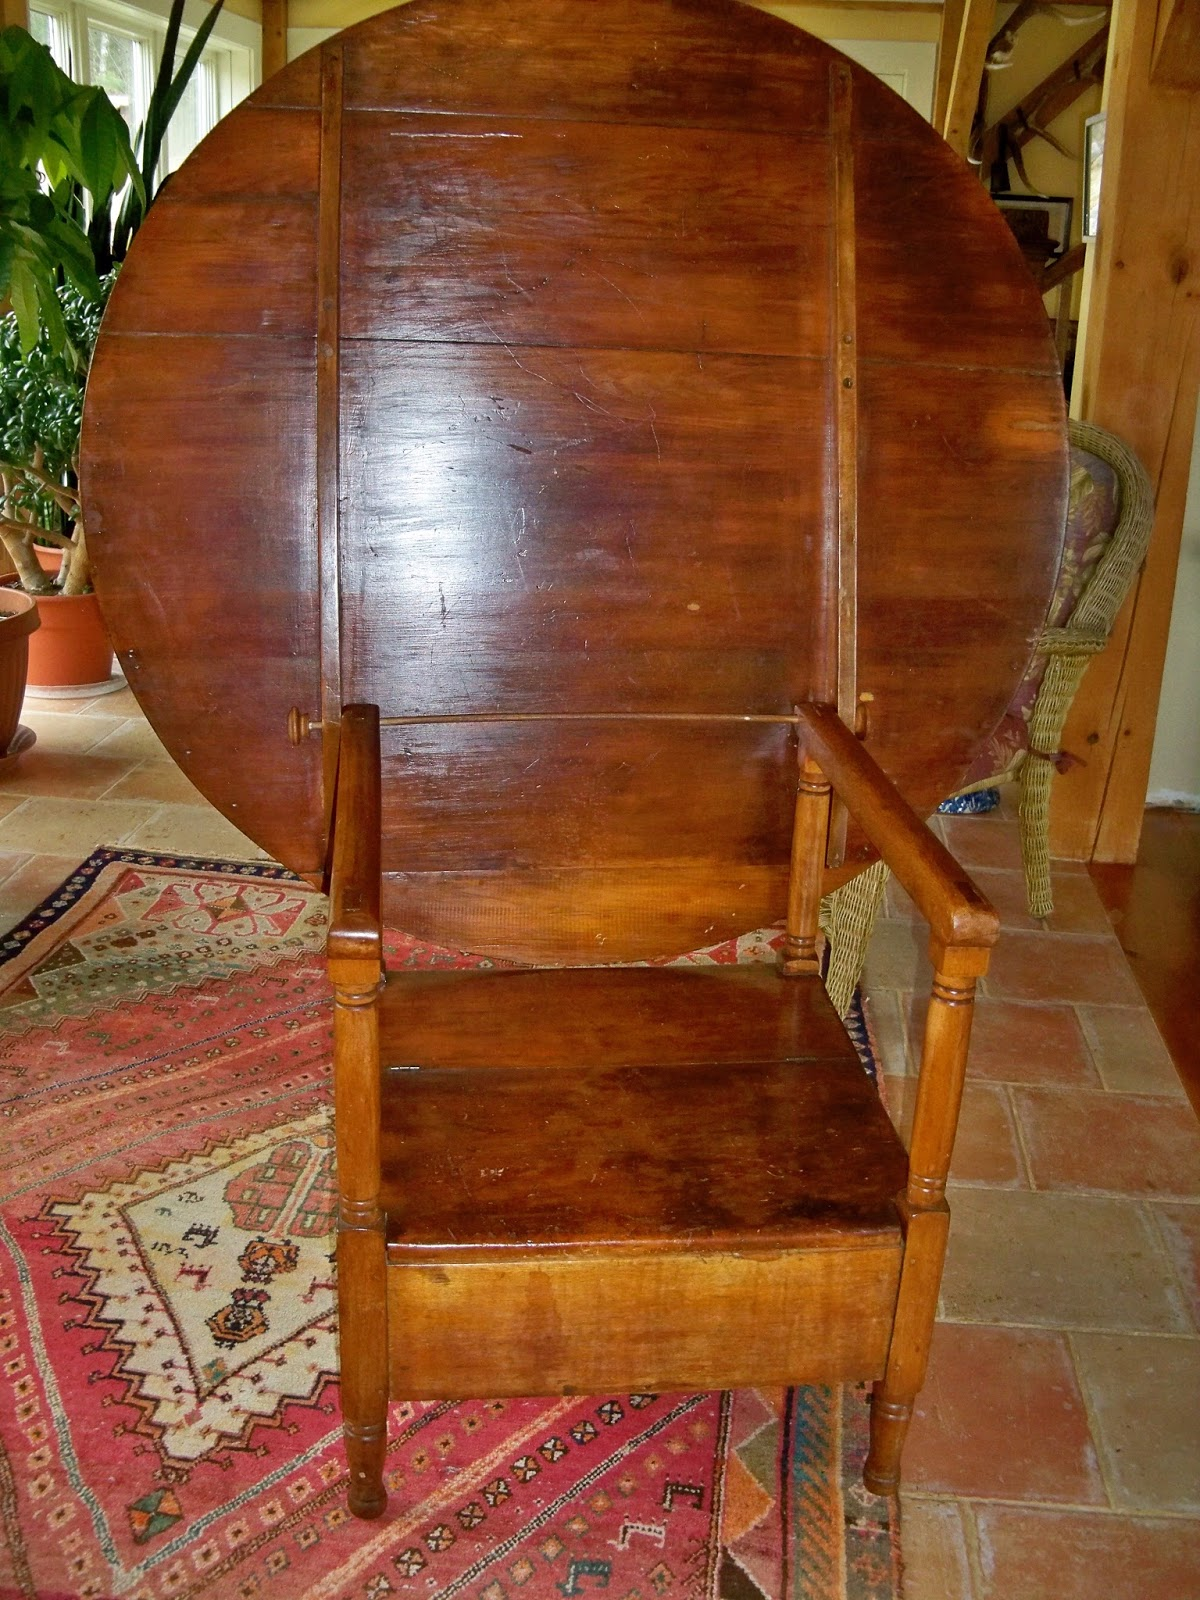 circular hutch table for sale antique with compartment - ANTIQUE PINE CHAIR TABLE - FOR SALE Goshen Antiques And Art